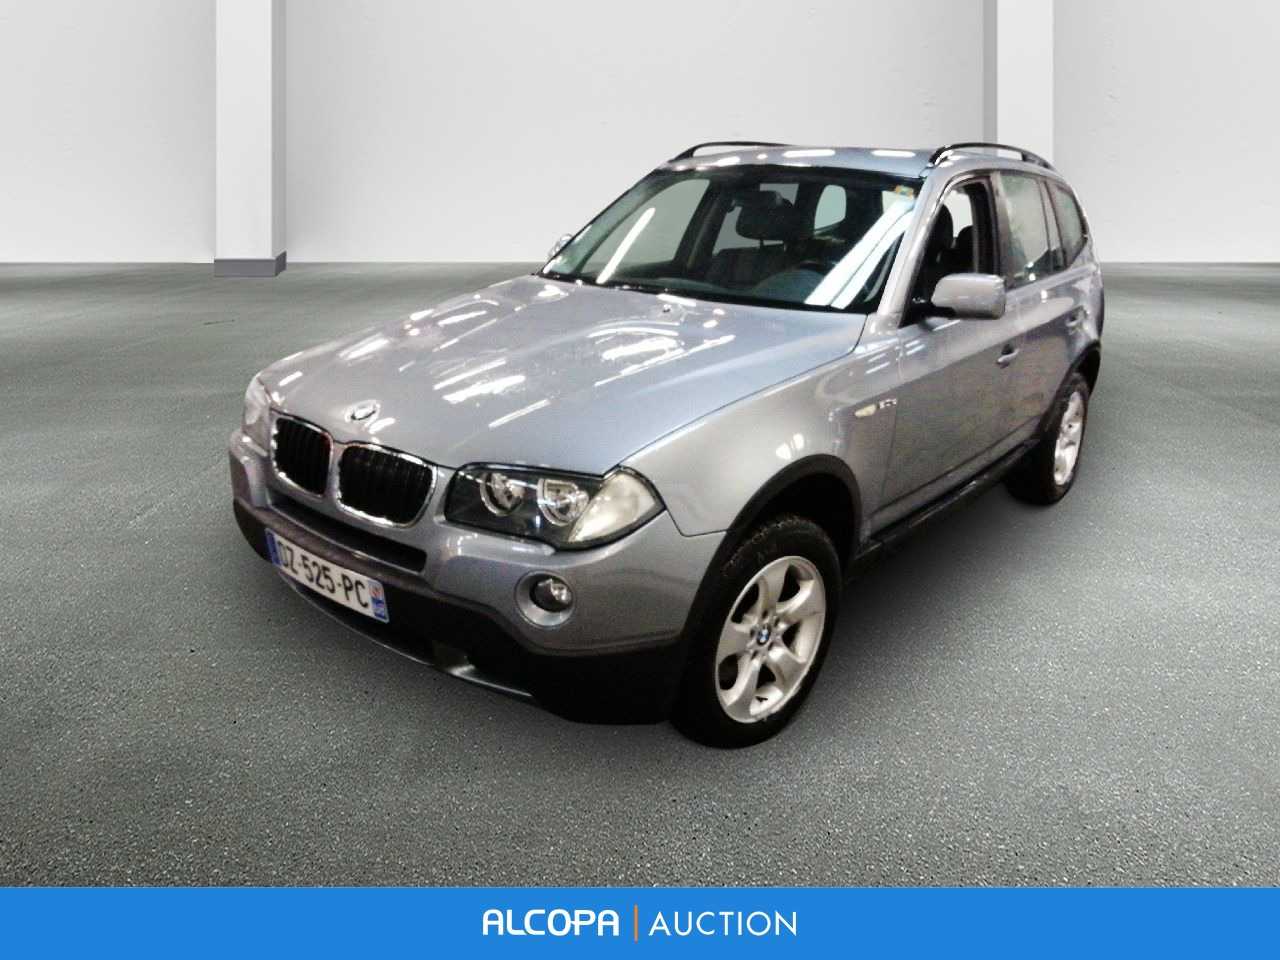 bmw x3 e83 lci x3 2 0d 177ch confort steptronic a alcopa auction. Black Bedroom Furniture Sets. Home Design Ideas